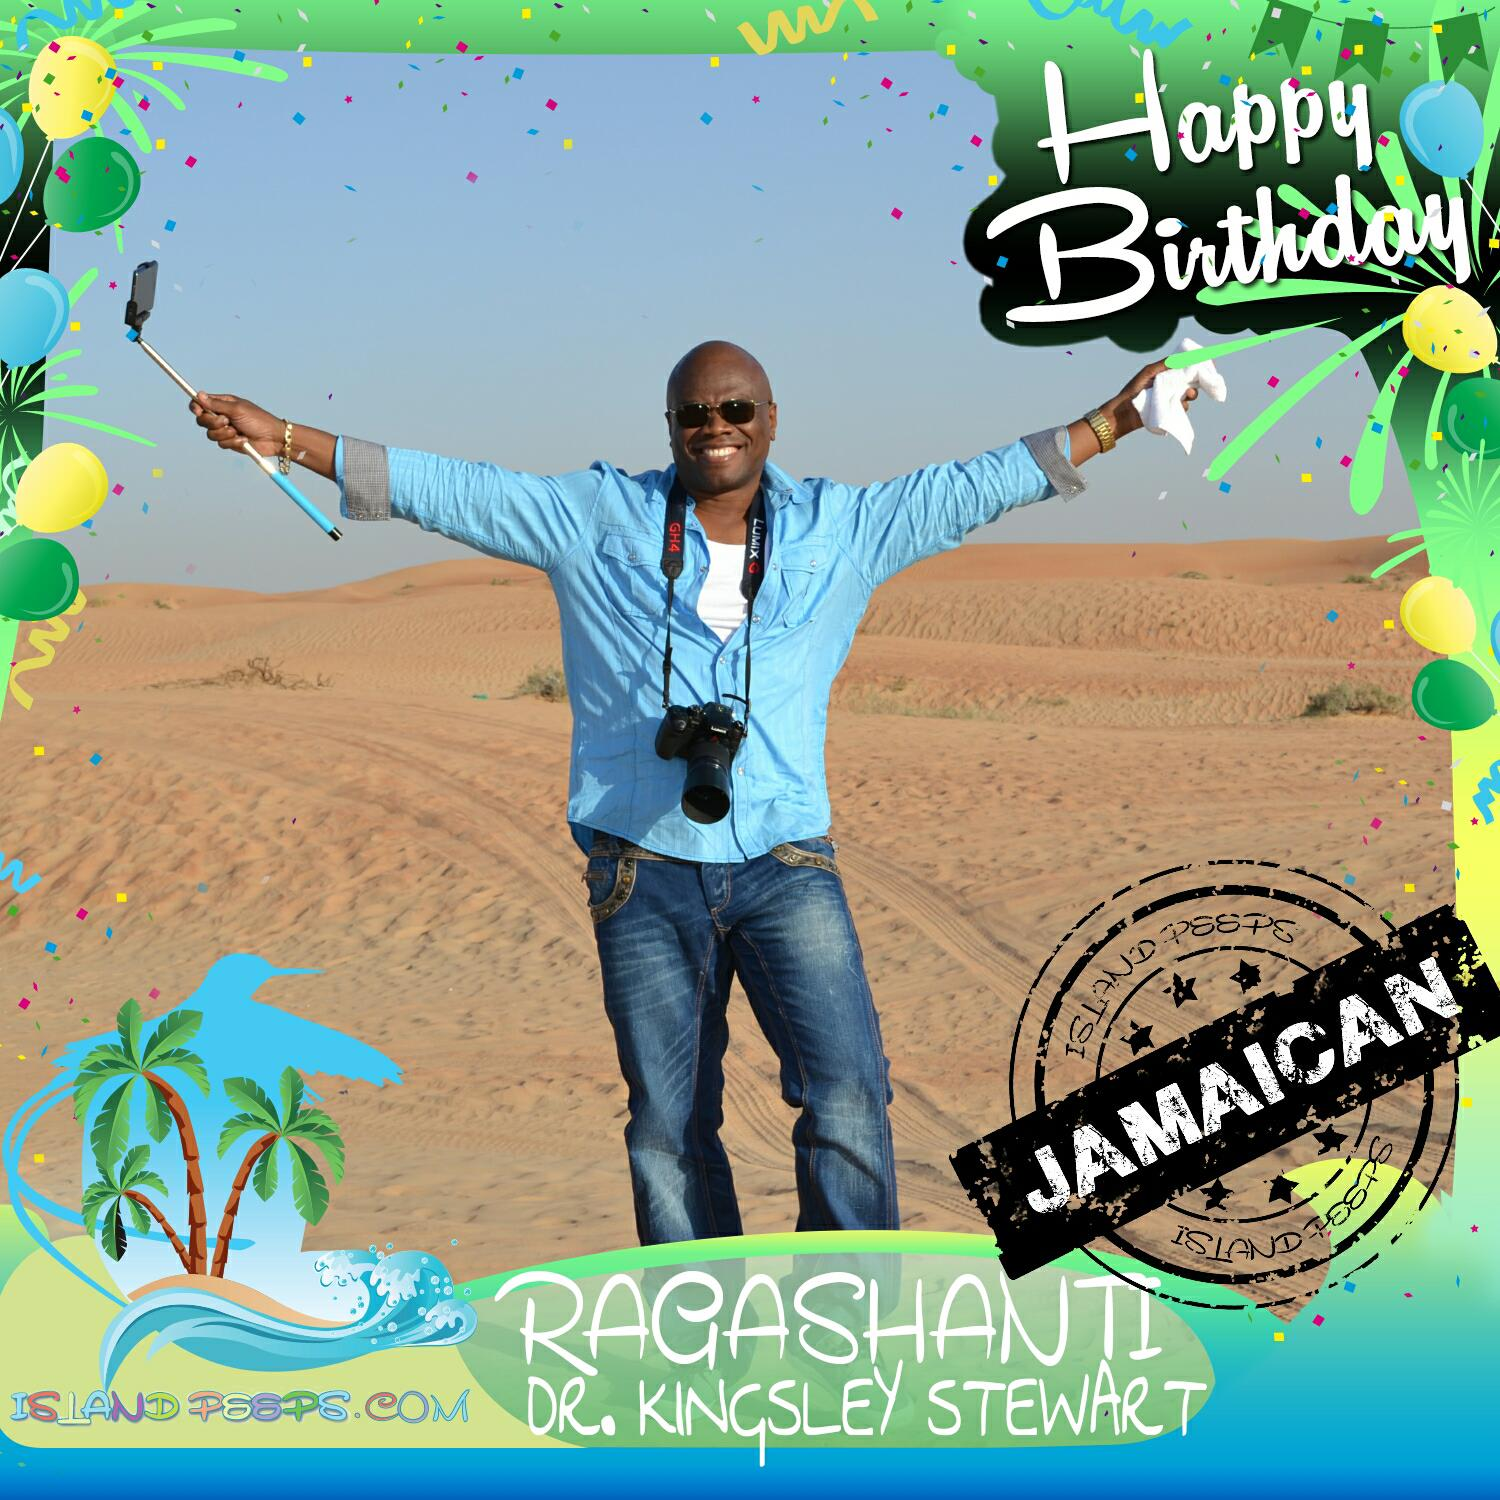 happy birthday in jamaican ; 03745f74b070430b56c2f5c888155809